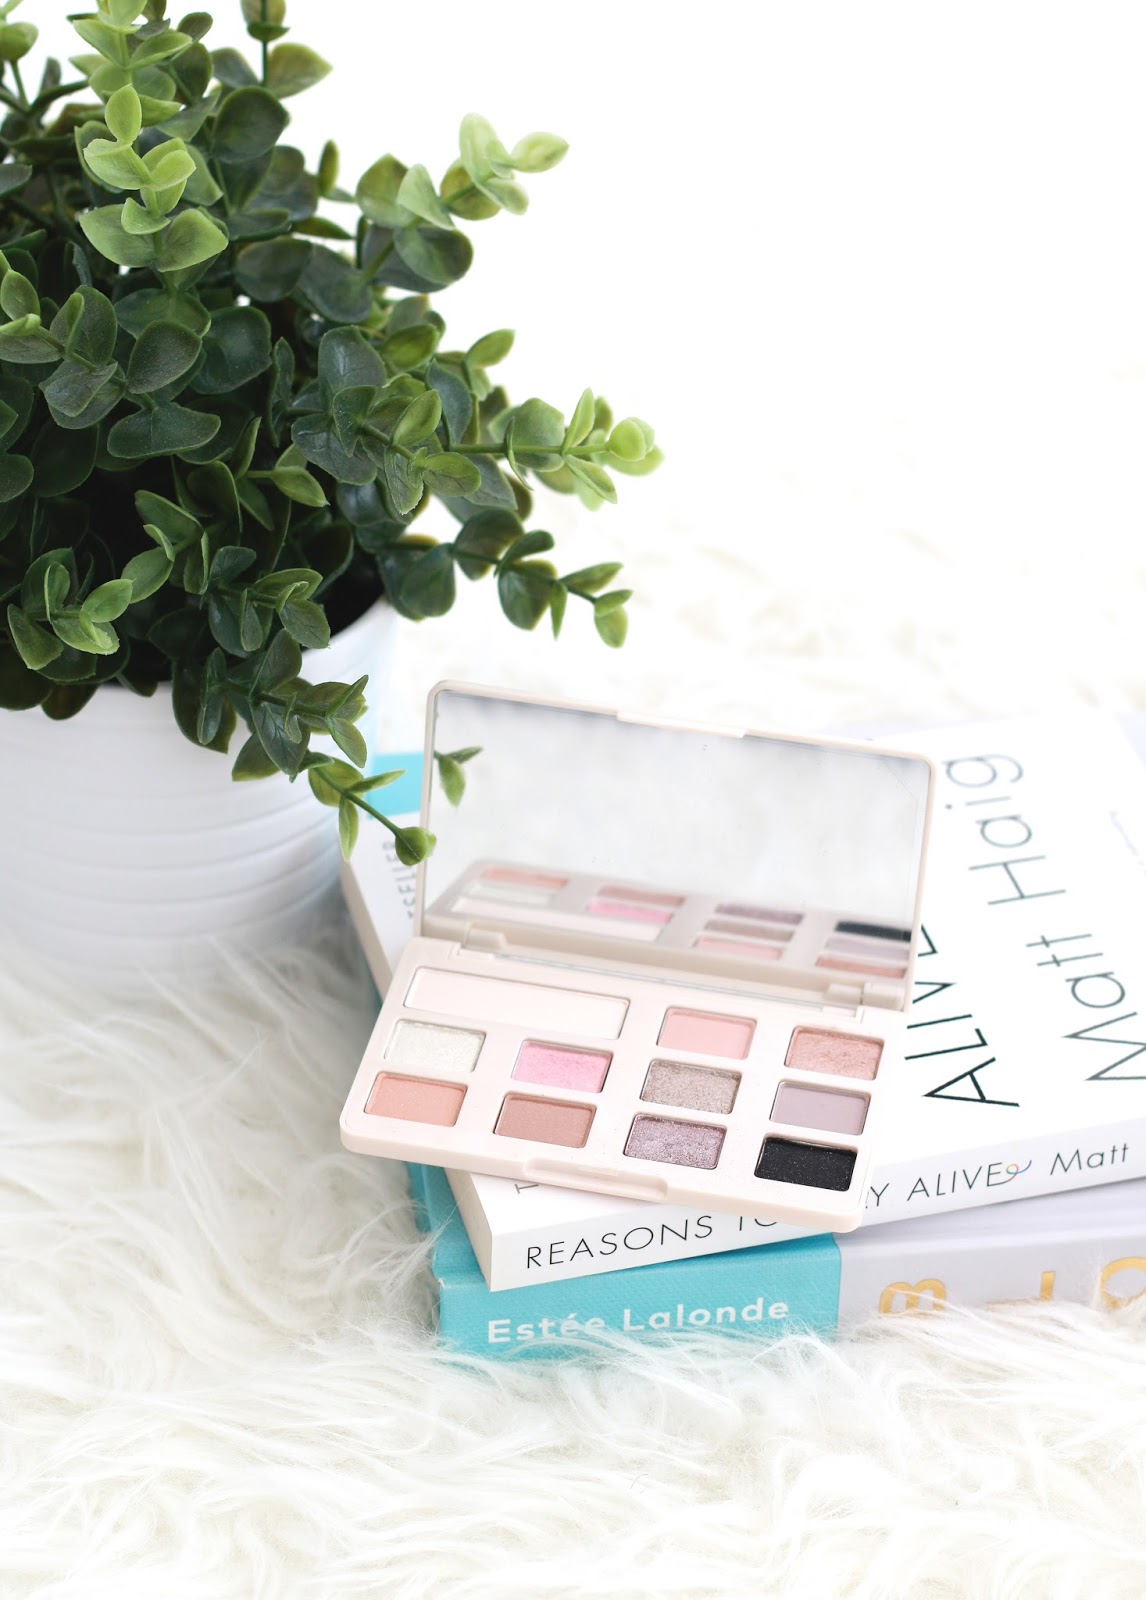 too faced cosmetics, too faced, too faced white chocolate chip palette, sephora, american beauty, eyeshadow palette, high end makeup palette, forever september, blogger, beauty blogger